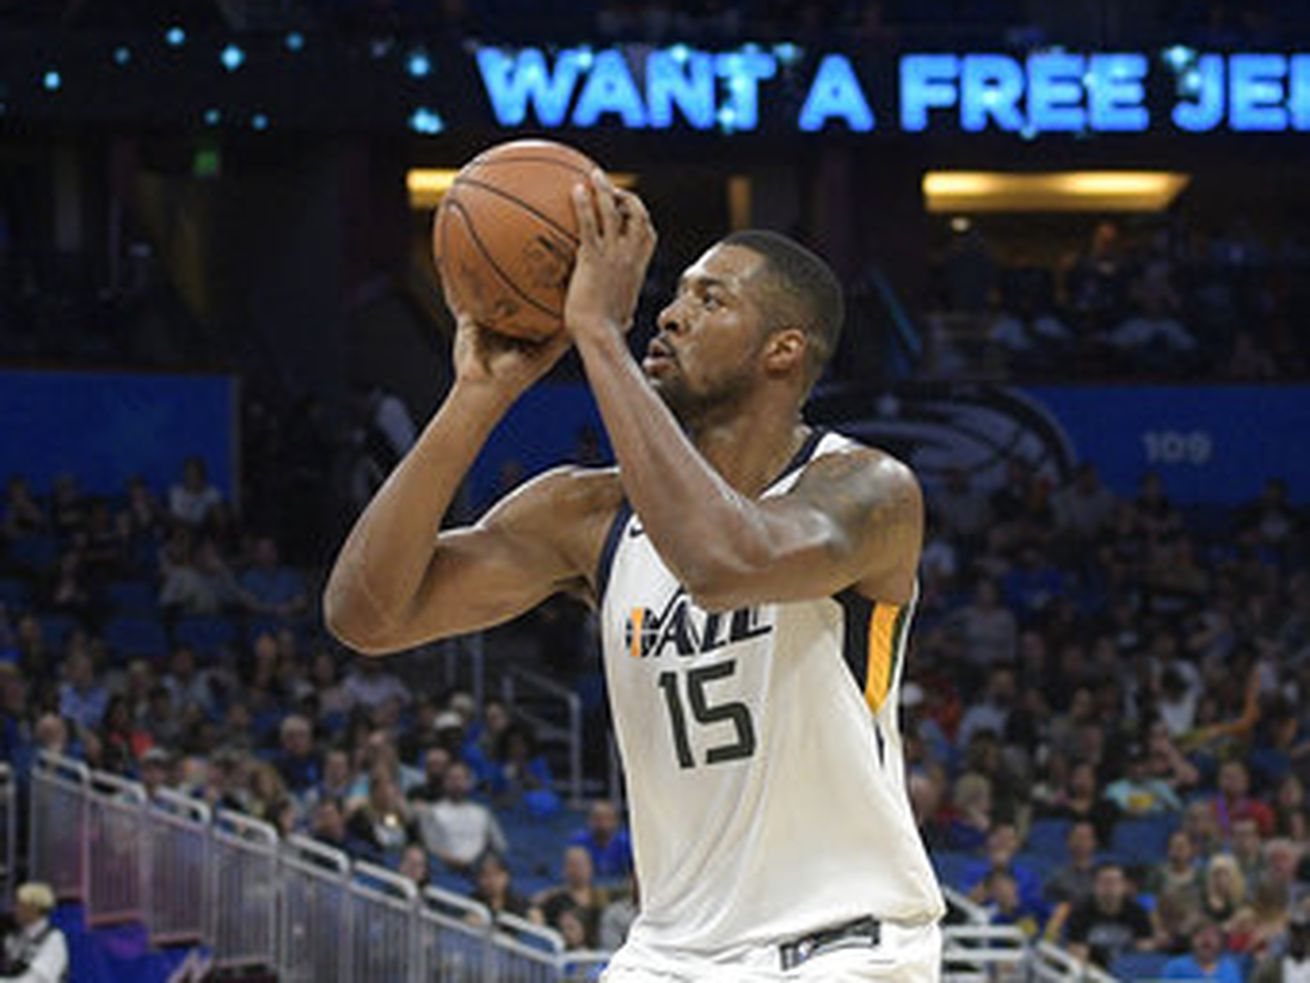 Utah Jazz training camp roster, jersey numbers for newcomers announced